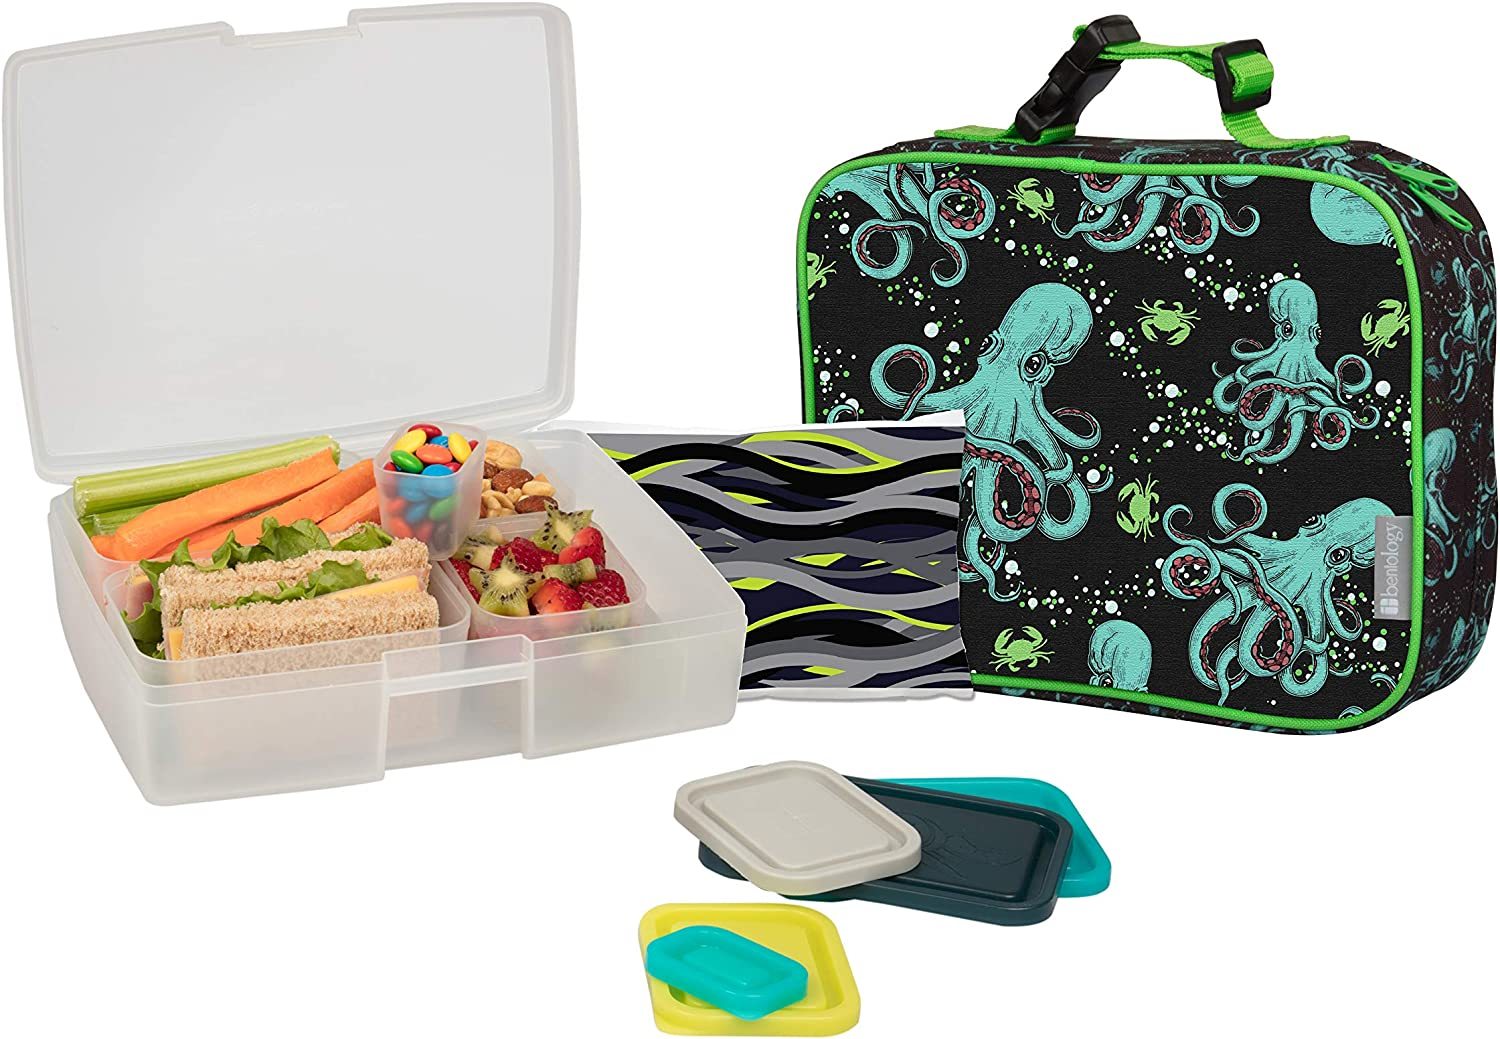 Bentology Lunch Bag and Box Set for Kids - Boys Insulated Lunchbox Tote, Bento Box, 5 Containers and Ice Pack - 9 Pieces - Octopus